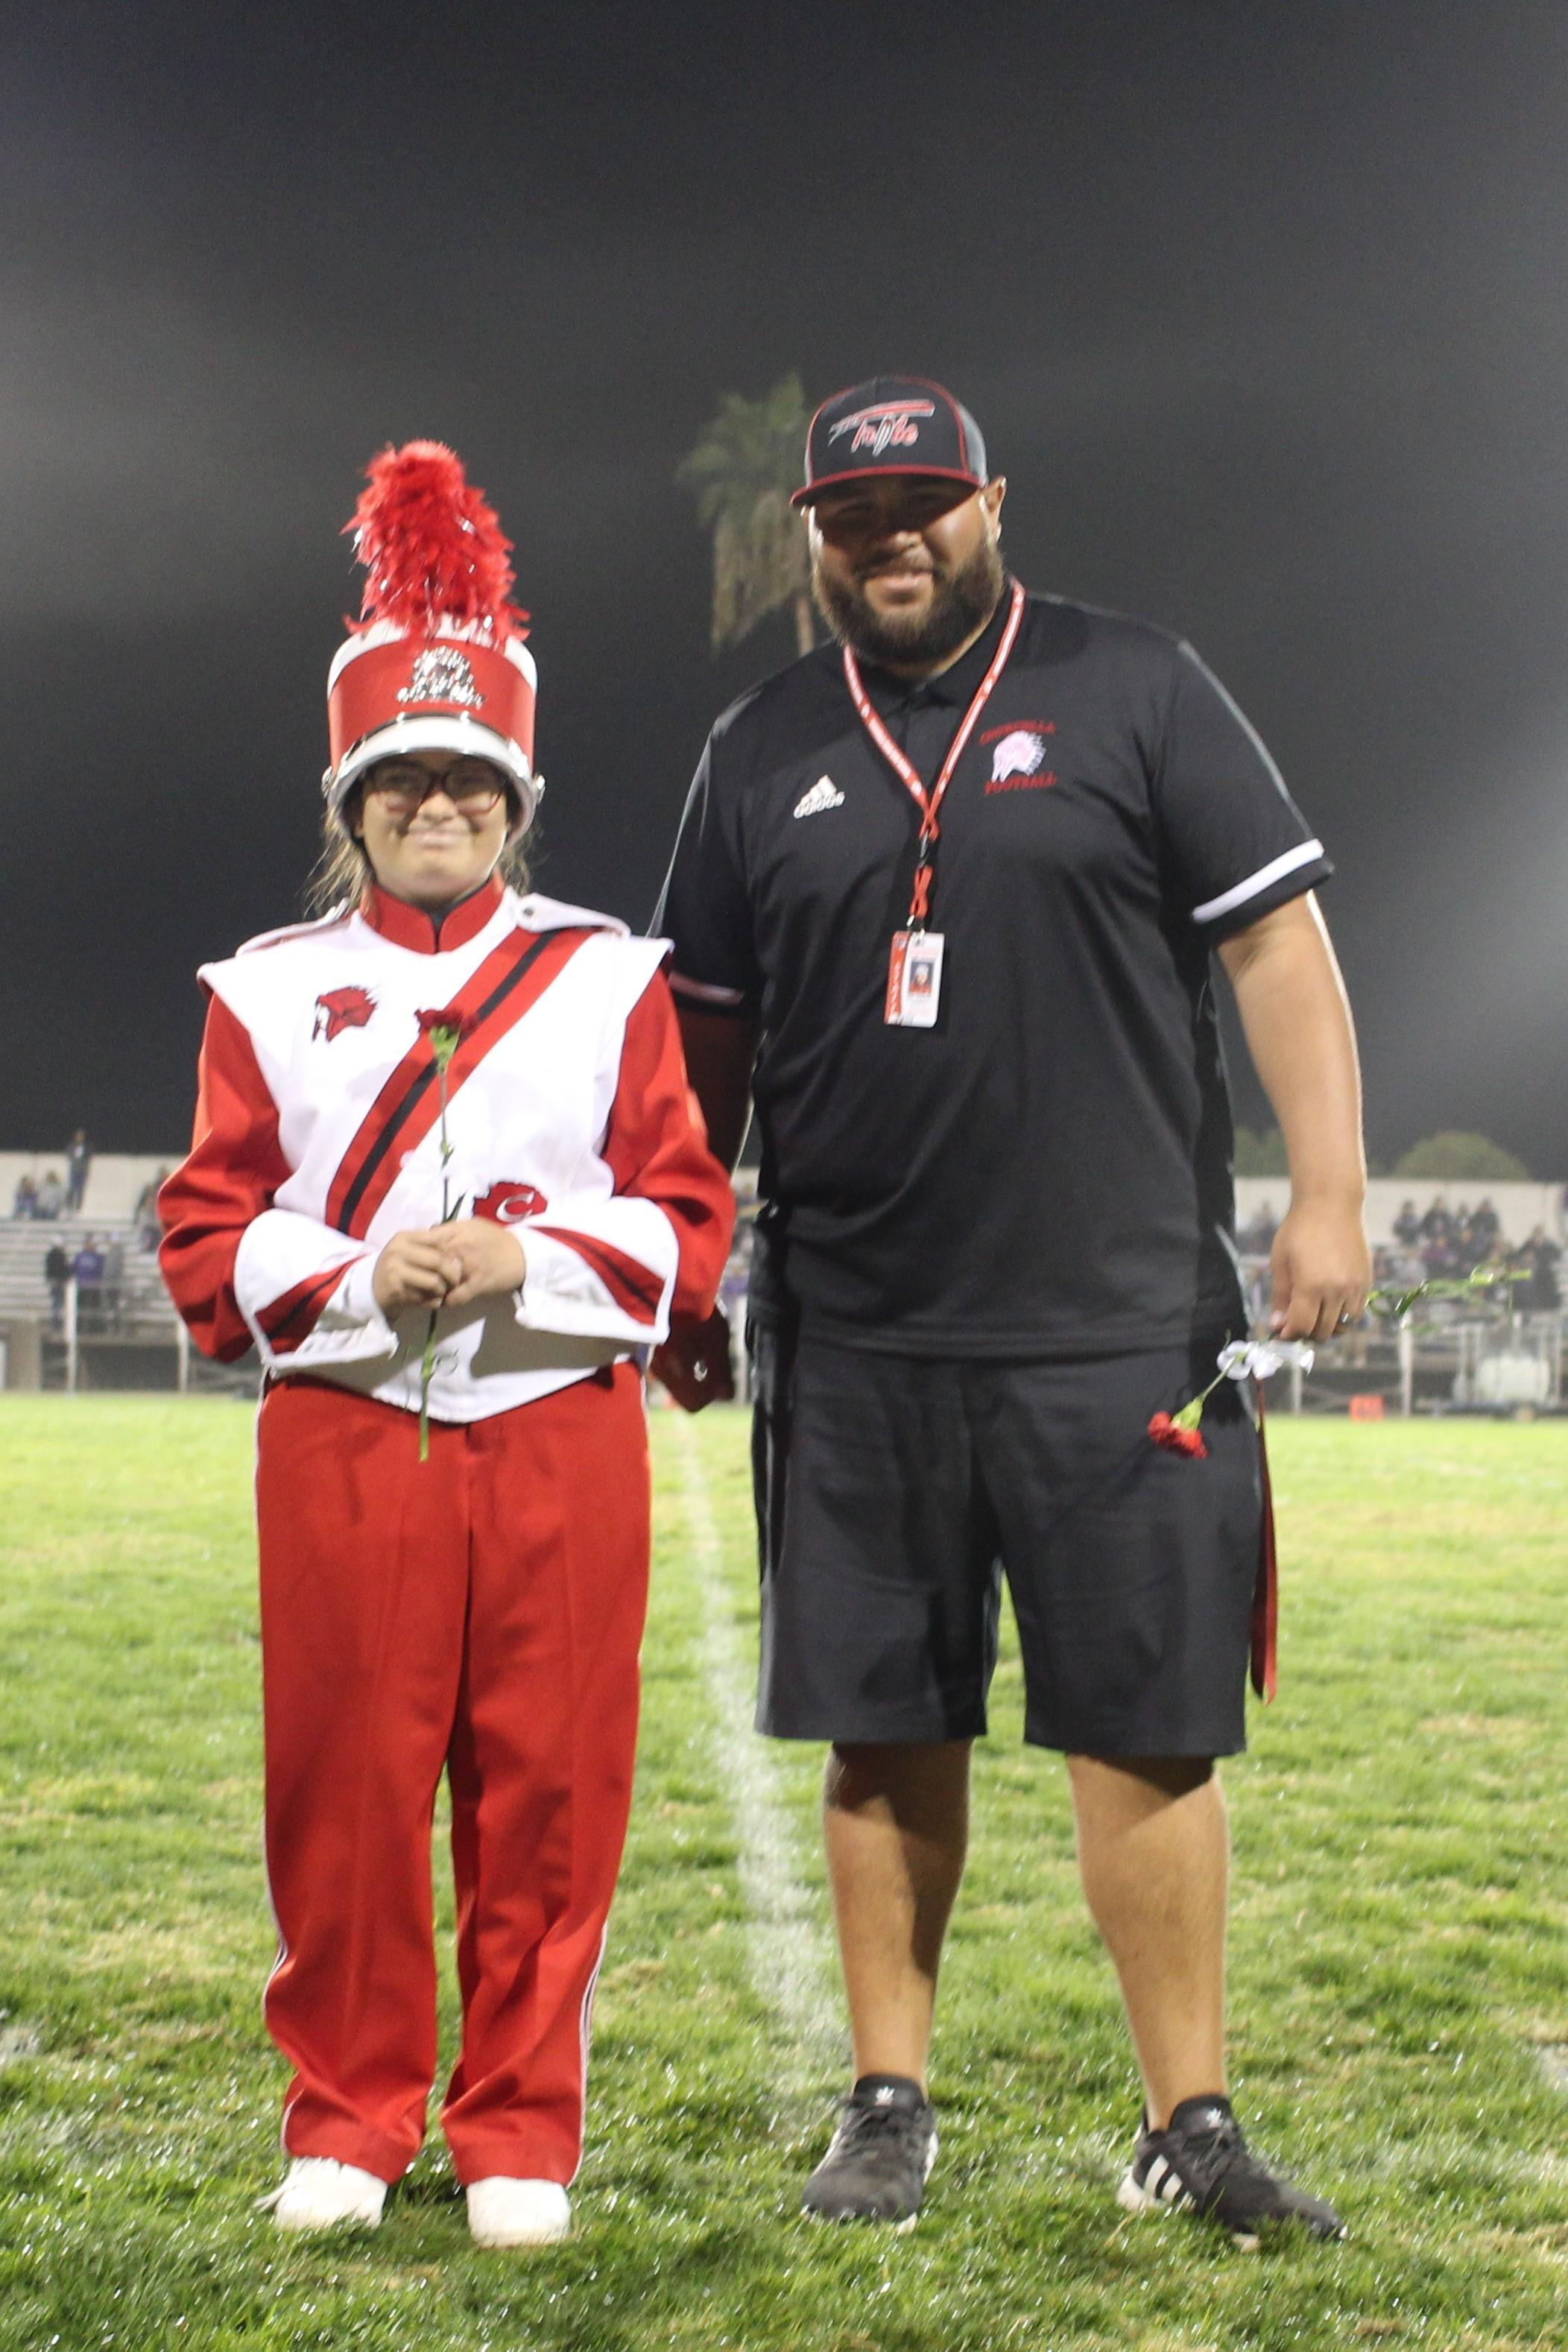 Senior band member Jamie Borbon and her escort.